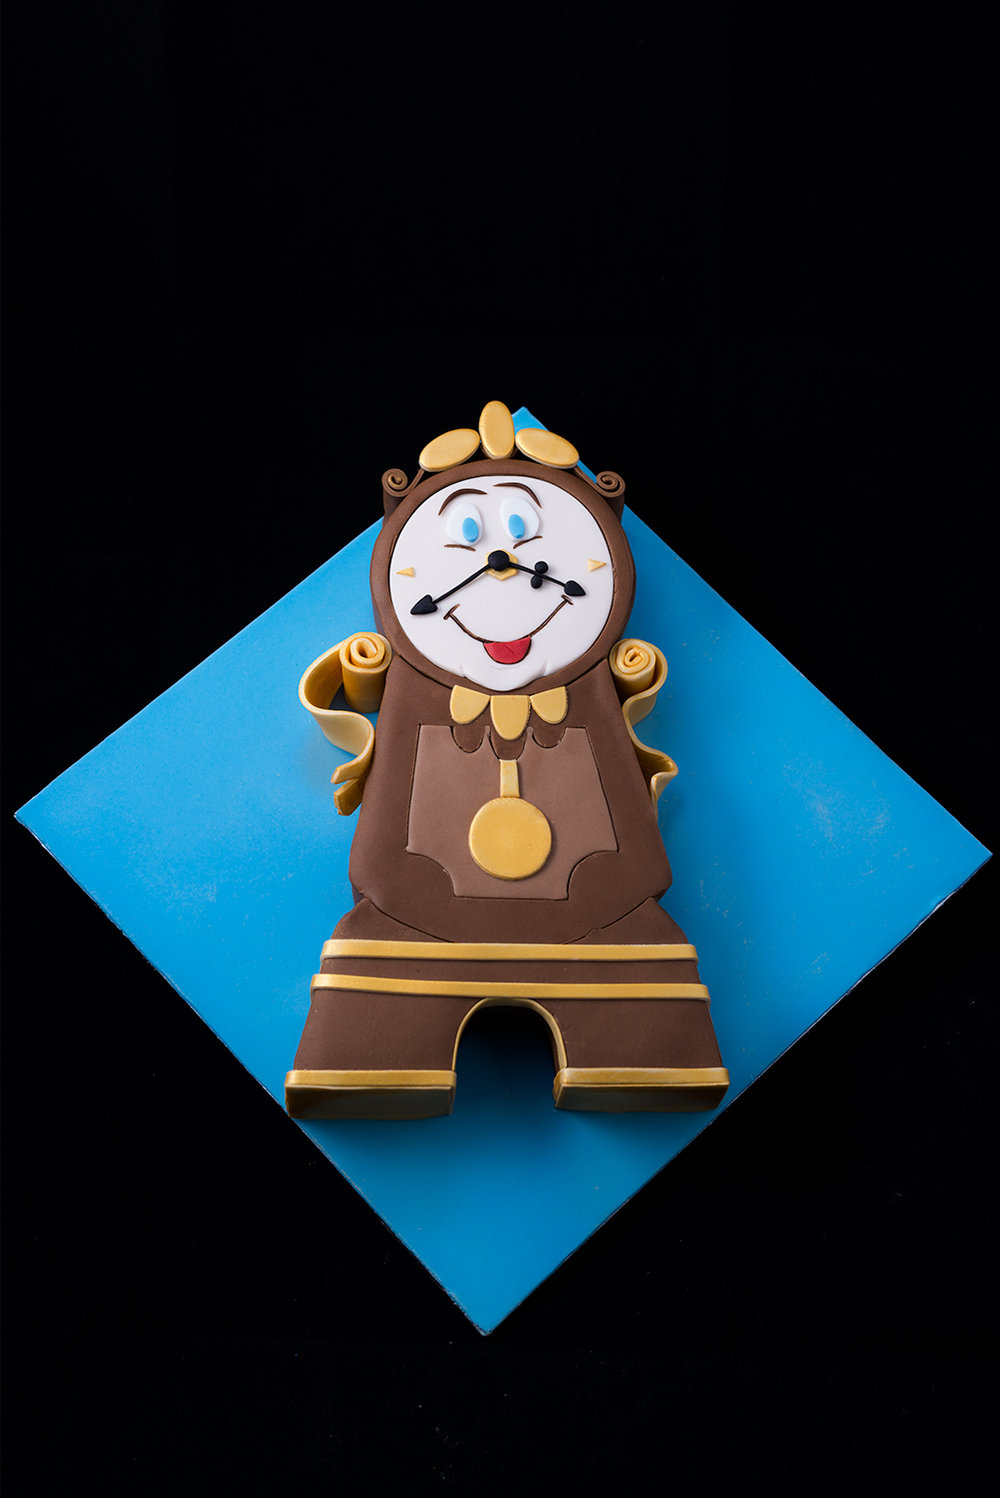 To celebrate the new adaption of Beauty & The Beast, here's our Cogsworth Cake.